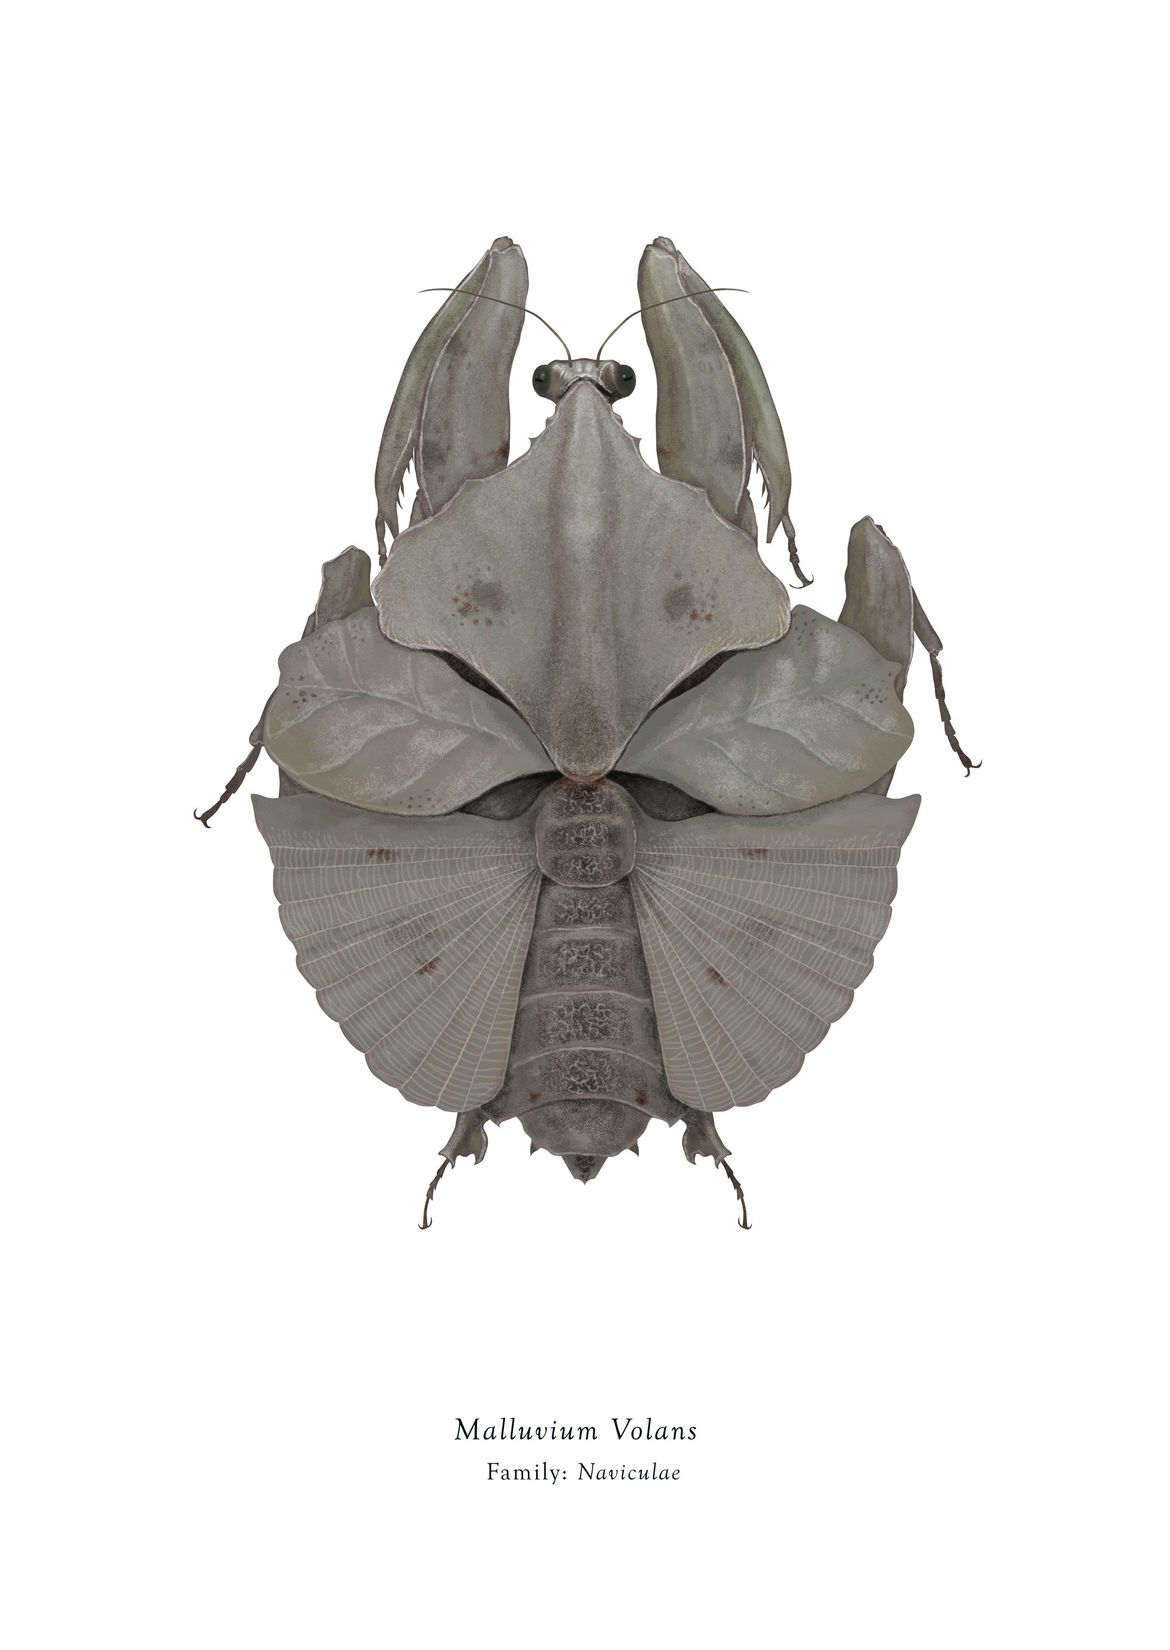 Star Wars characters reimagined as insects